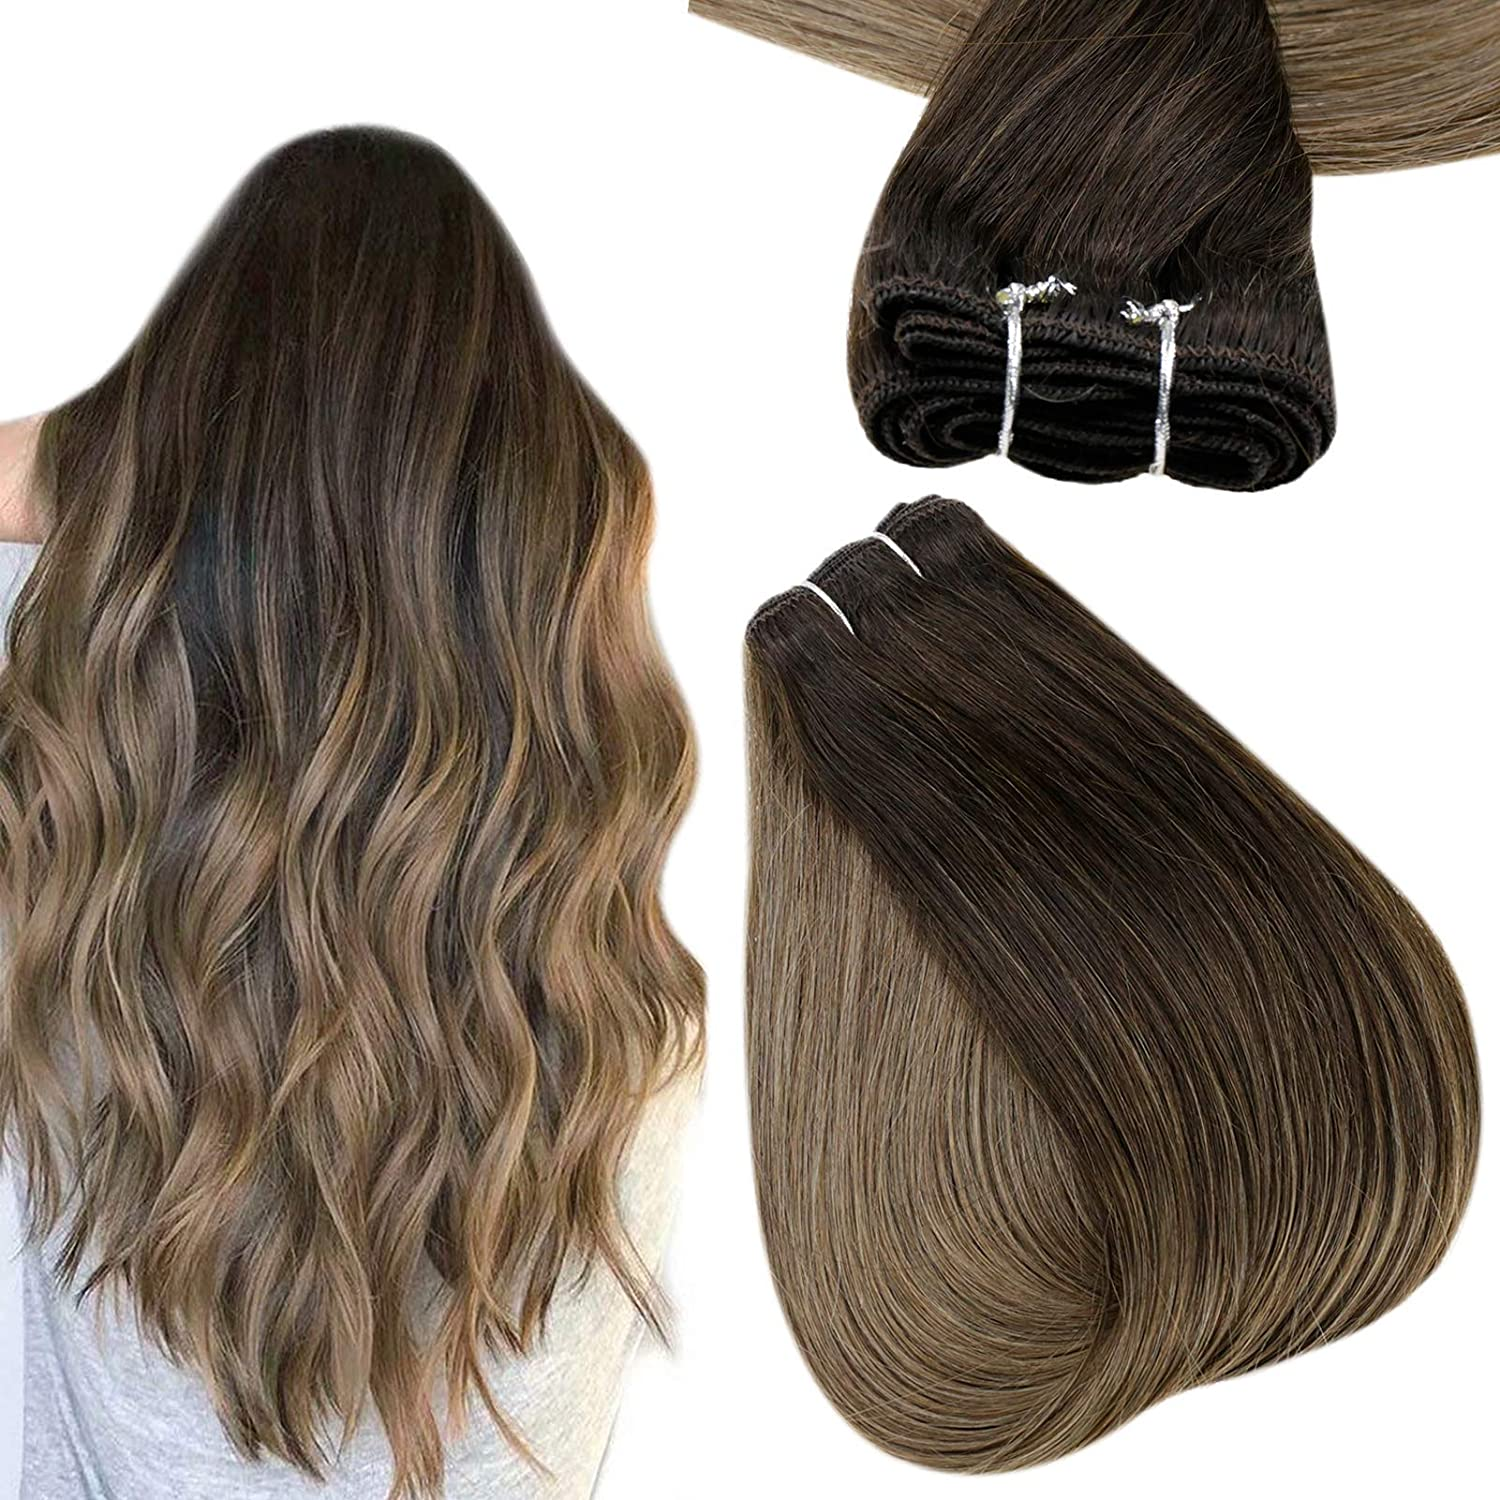 Complete Free Shipping Easyouth Sew in Hair Extensions C Human Real Balayage Super beauty product restock quality top Ombre